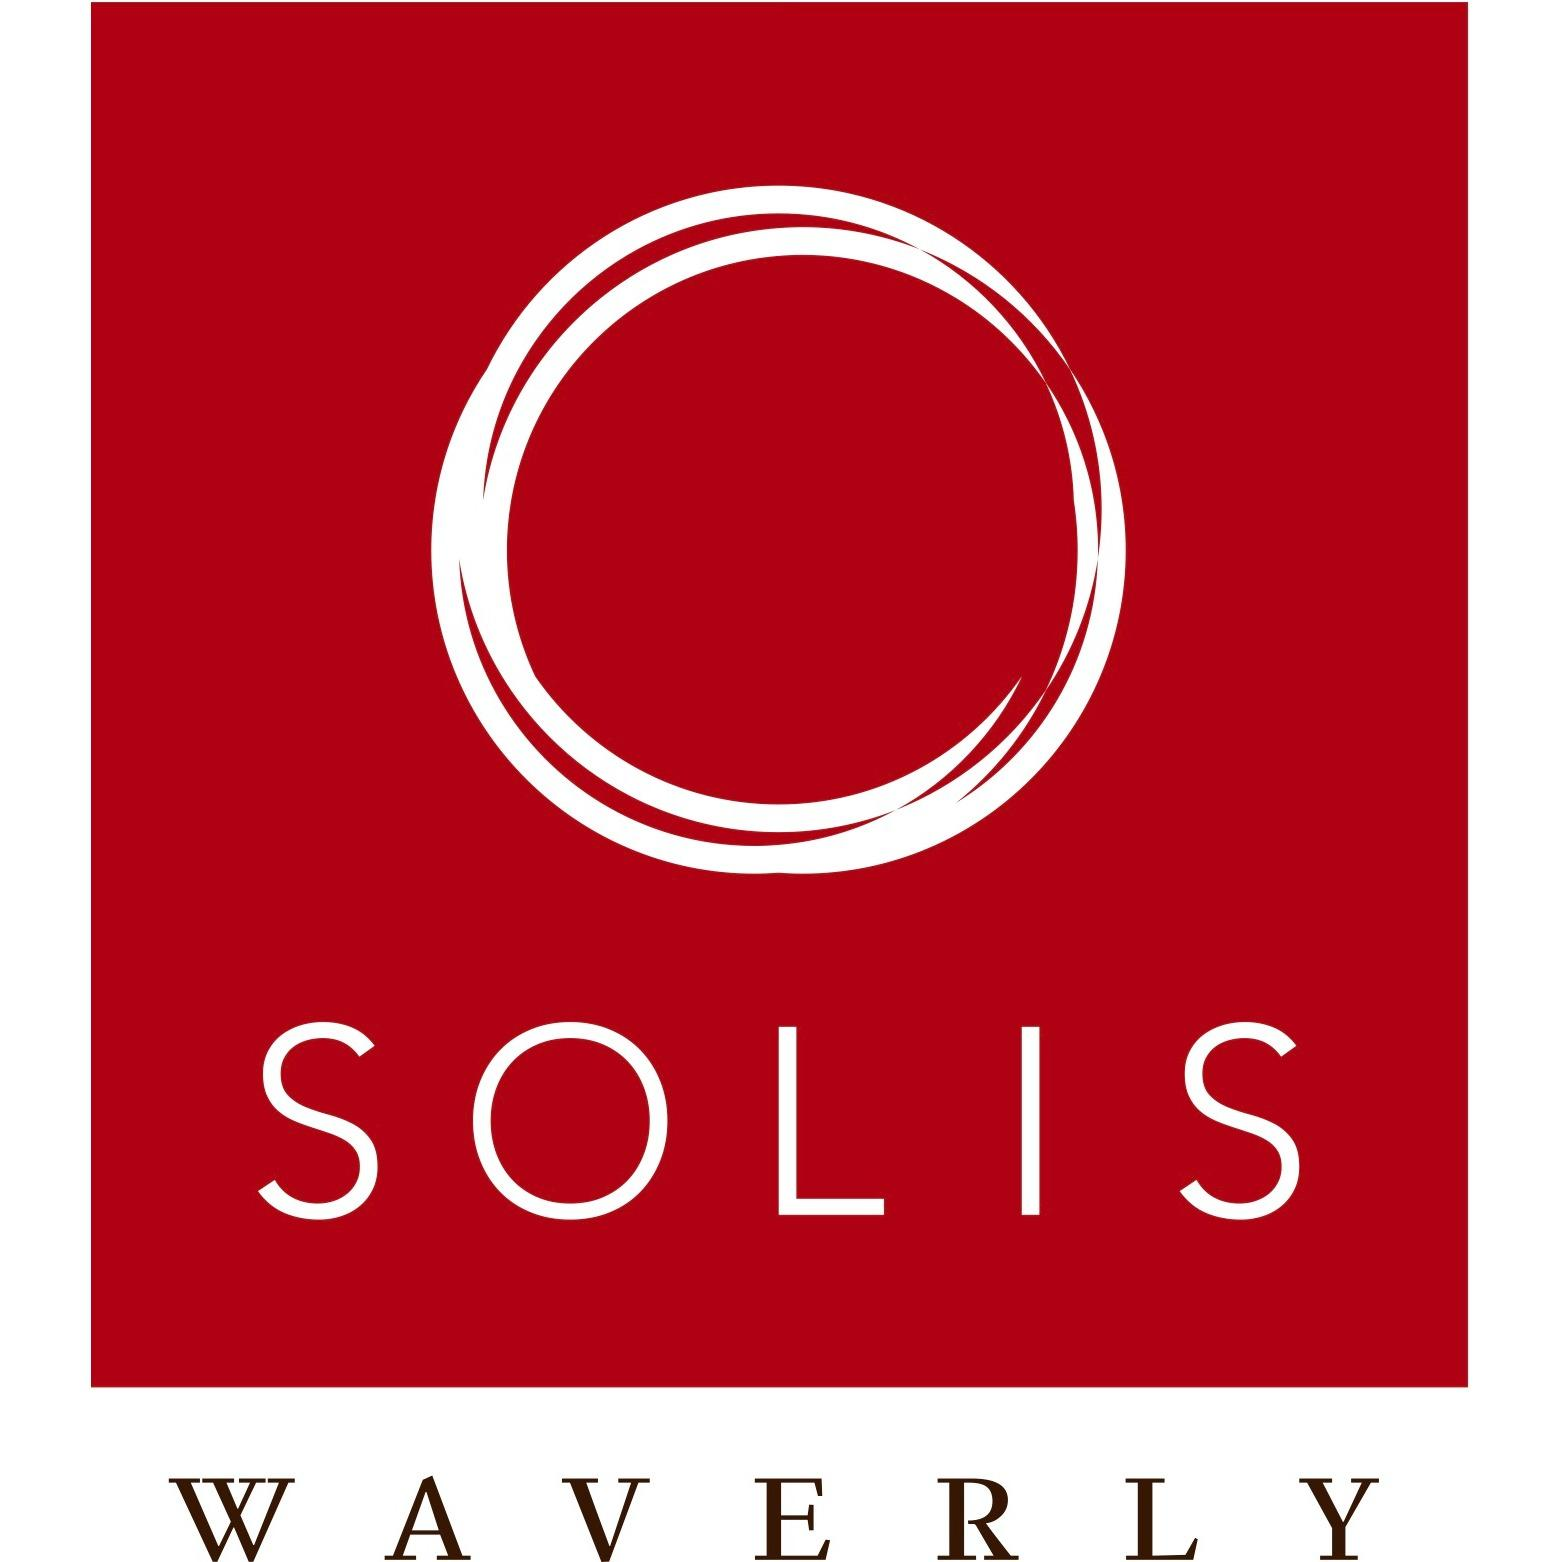 Solis Waverly